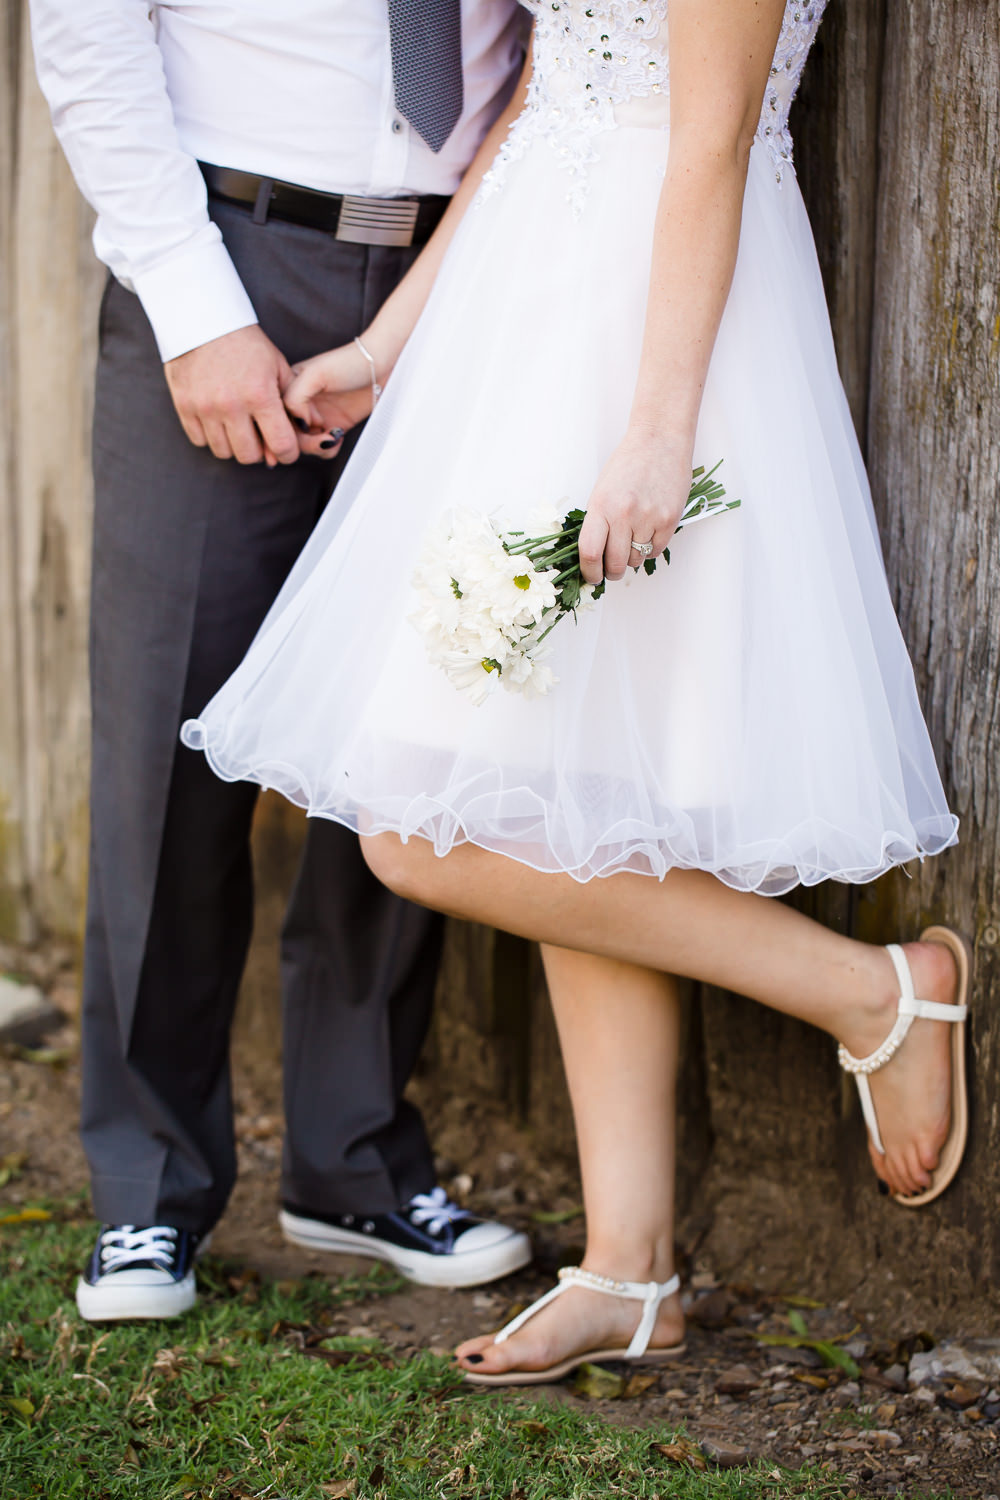 relaxed-wedding-non-traditional-wedding-gemma-clarke-phtography-australian-wedding-73